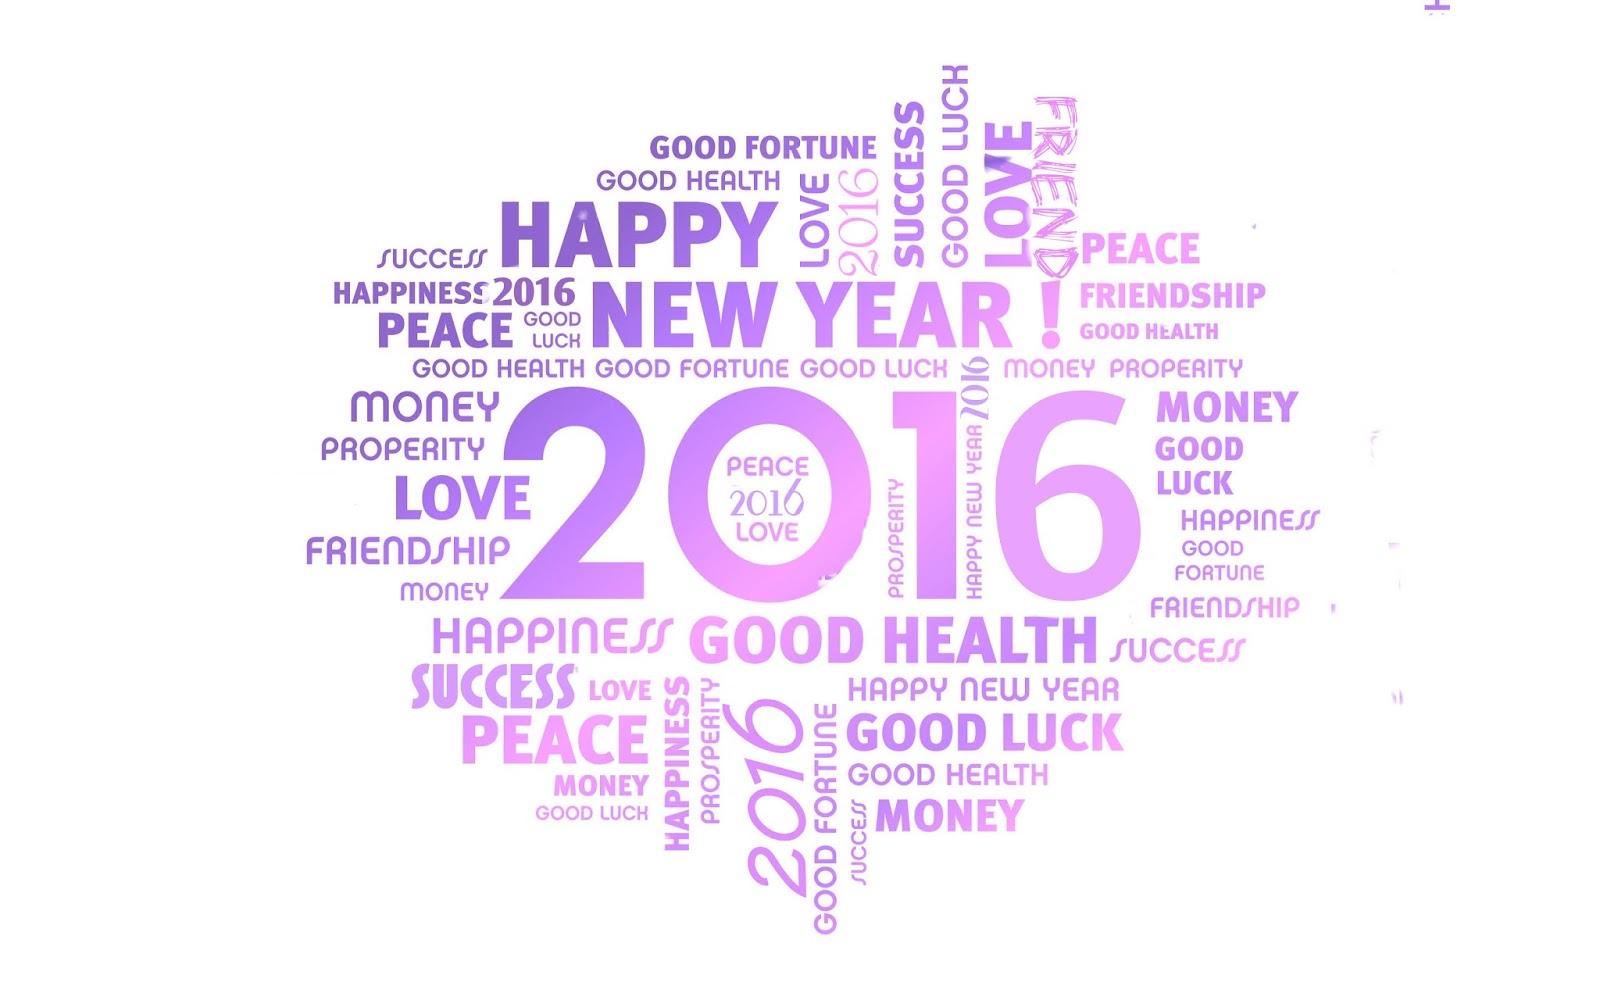 Happy new year 2016 images wallpapers hd free download happy new year happy new year 2016 images wallpapers hd free download m4hsunfo